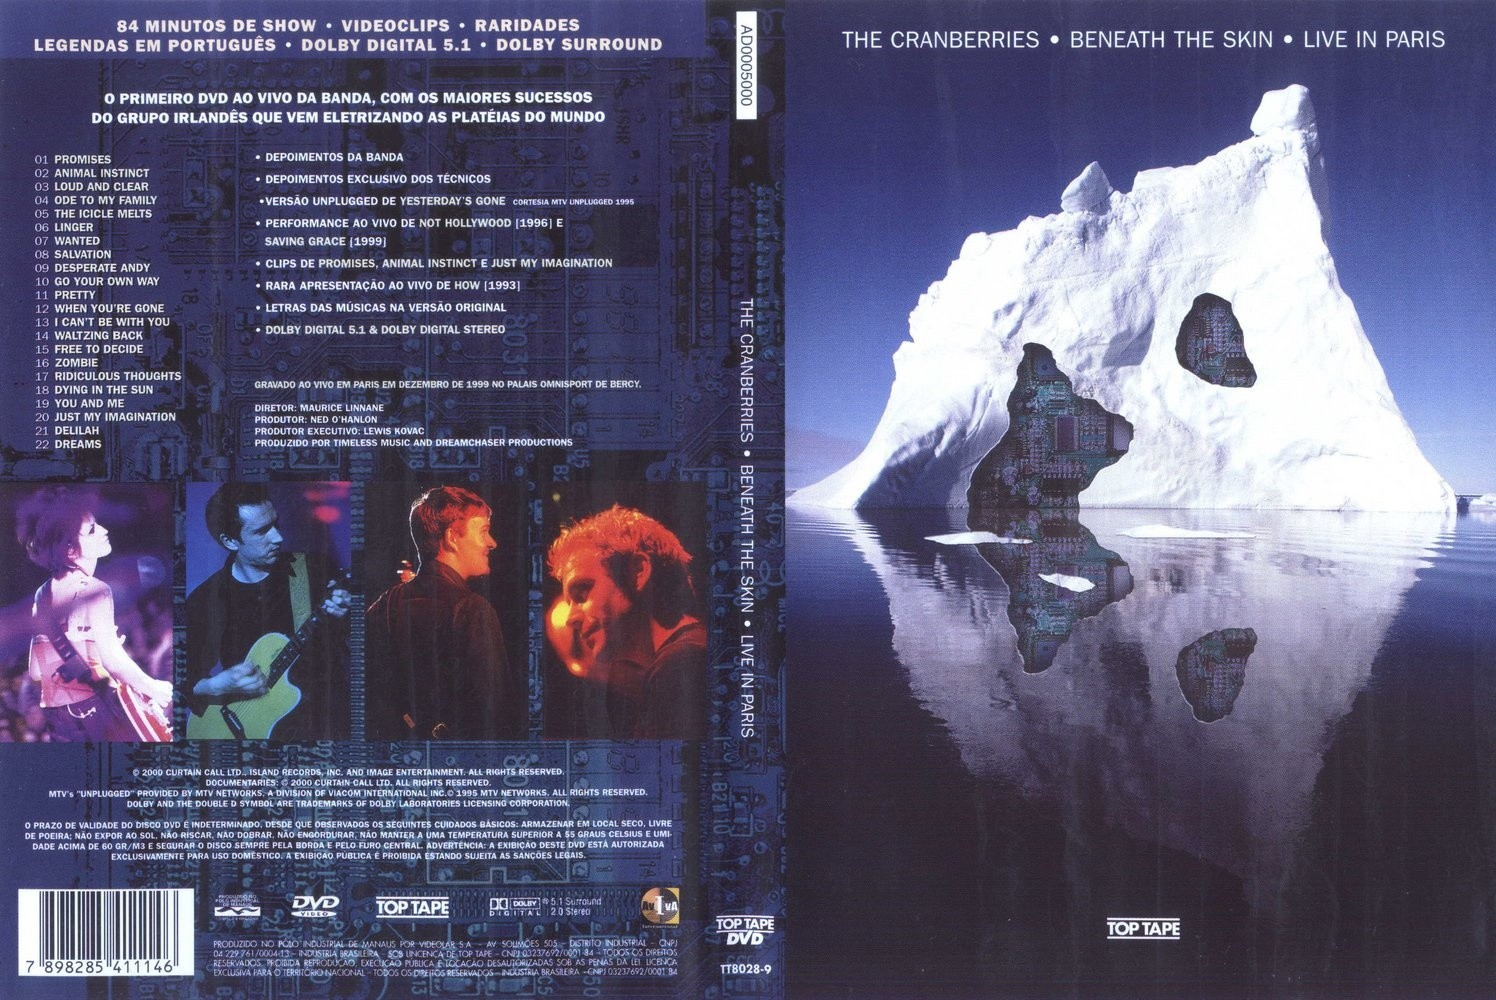 DVD LACRADO THE CRANBERRIES BENEATH THE SKIN LIVE IN PARIS